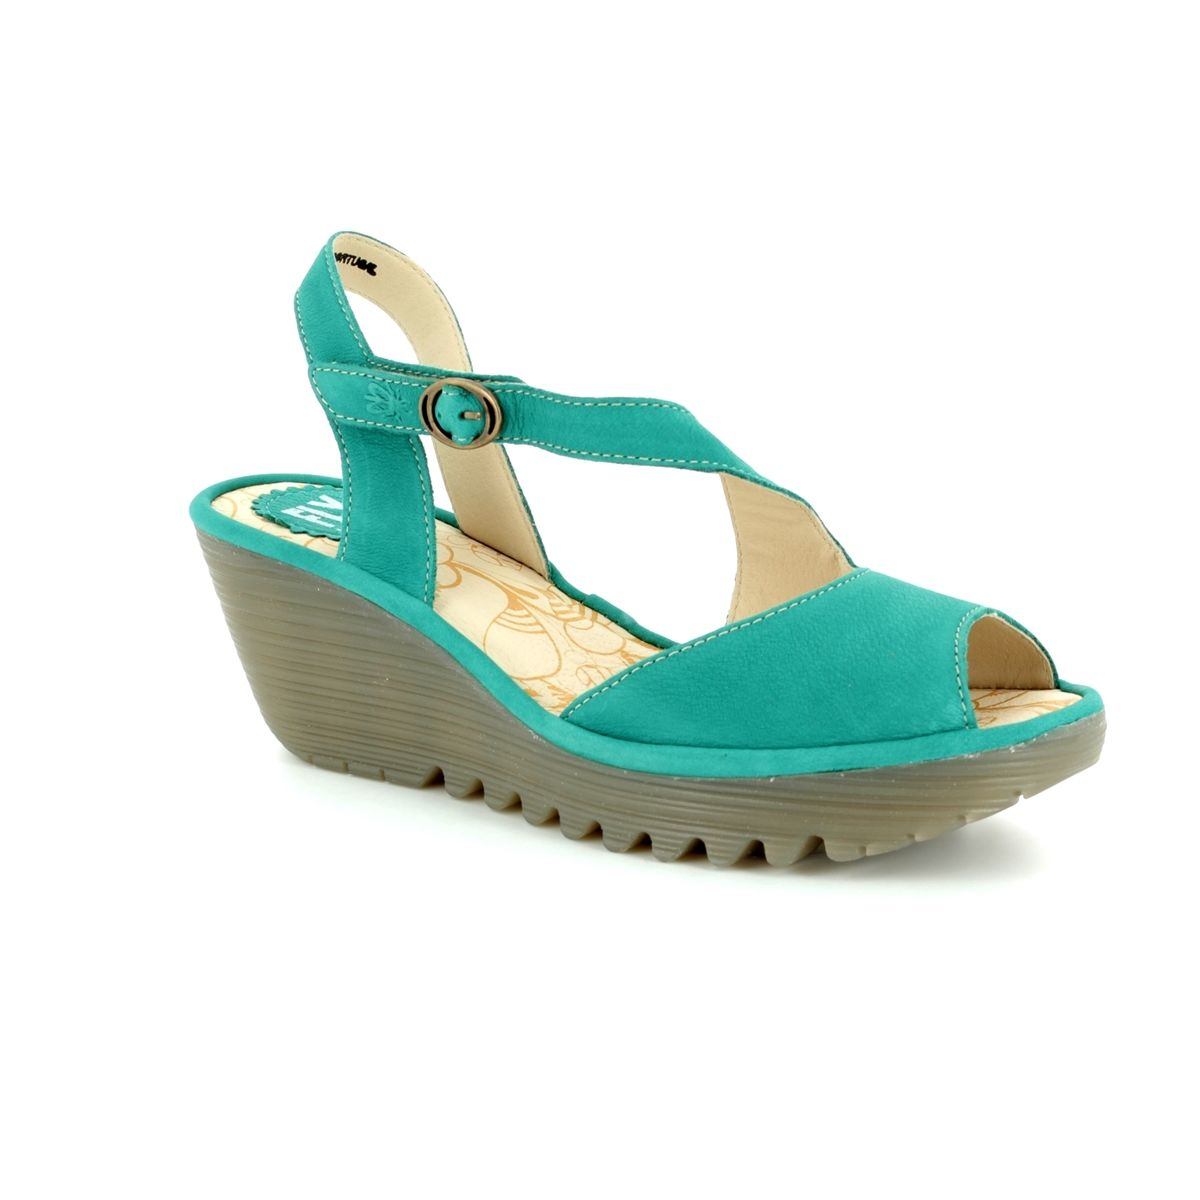 582c8a98786387 Fly London Yamp 836 P500836-004 Turquoise Wedge Sandals